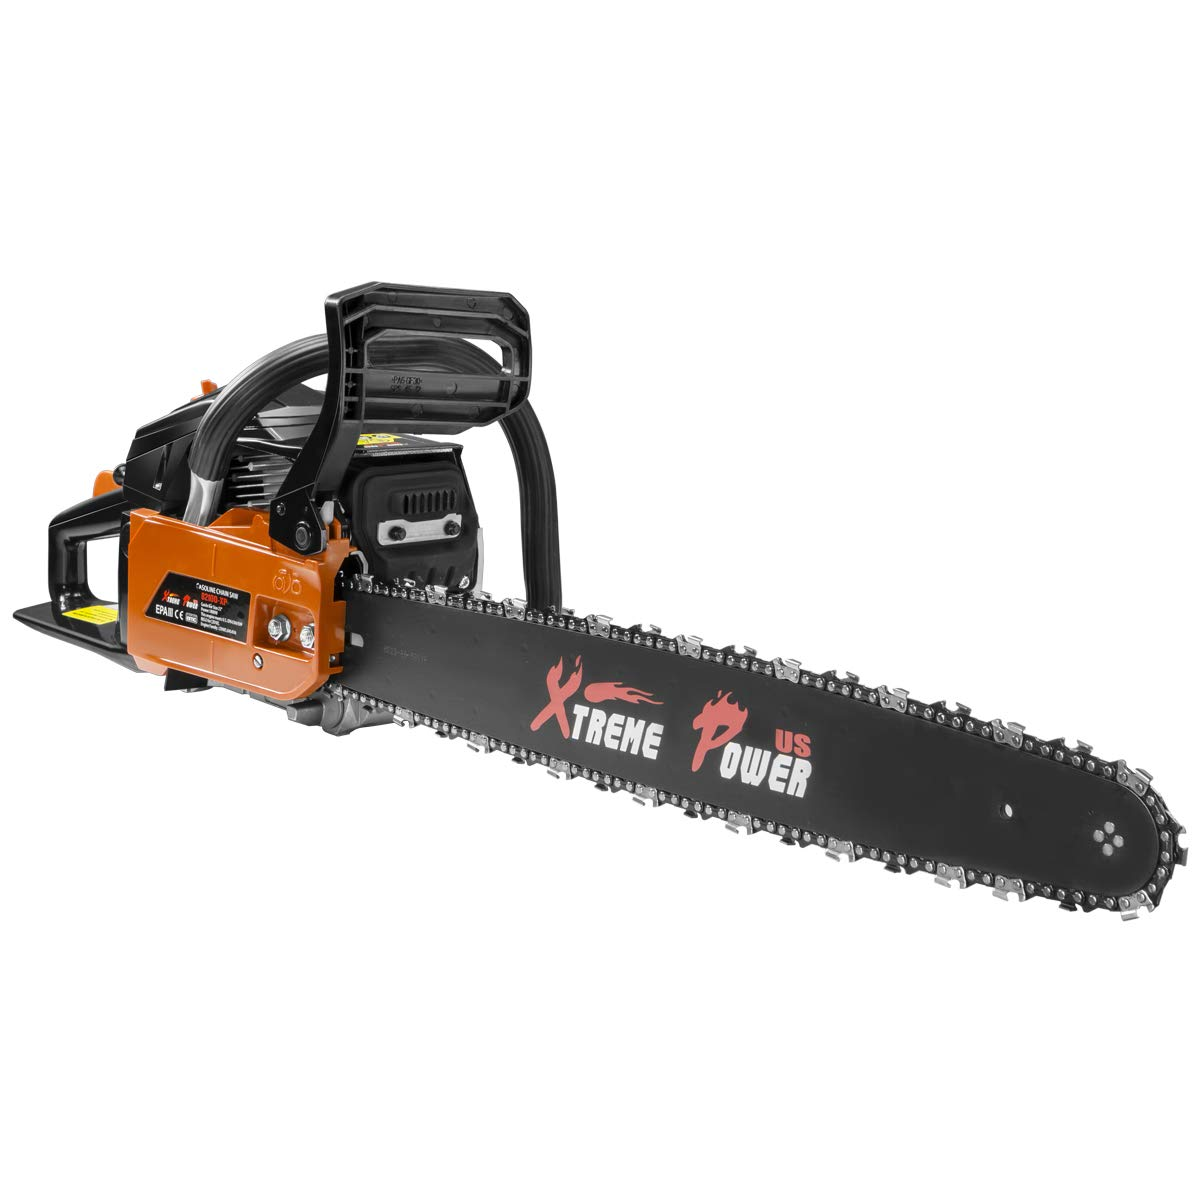 XtremepowerUS 82100-XP Chainsaws product image 1